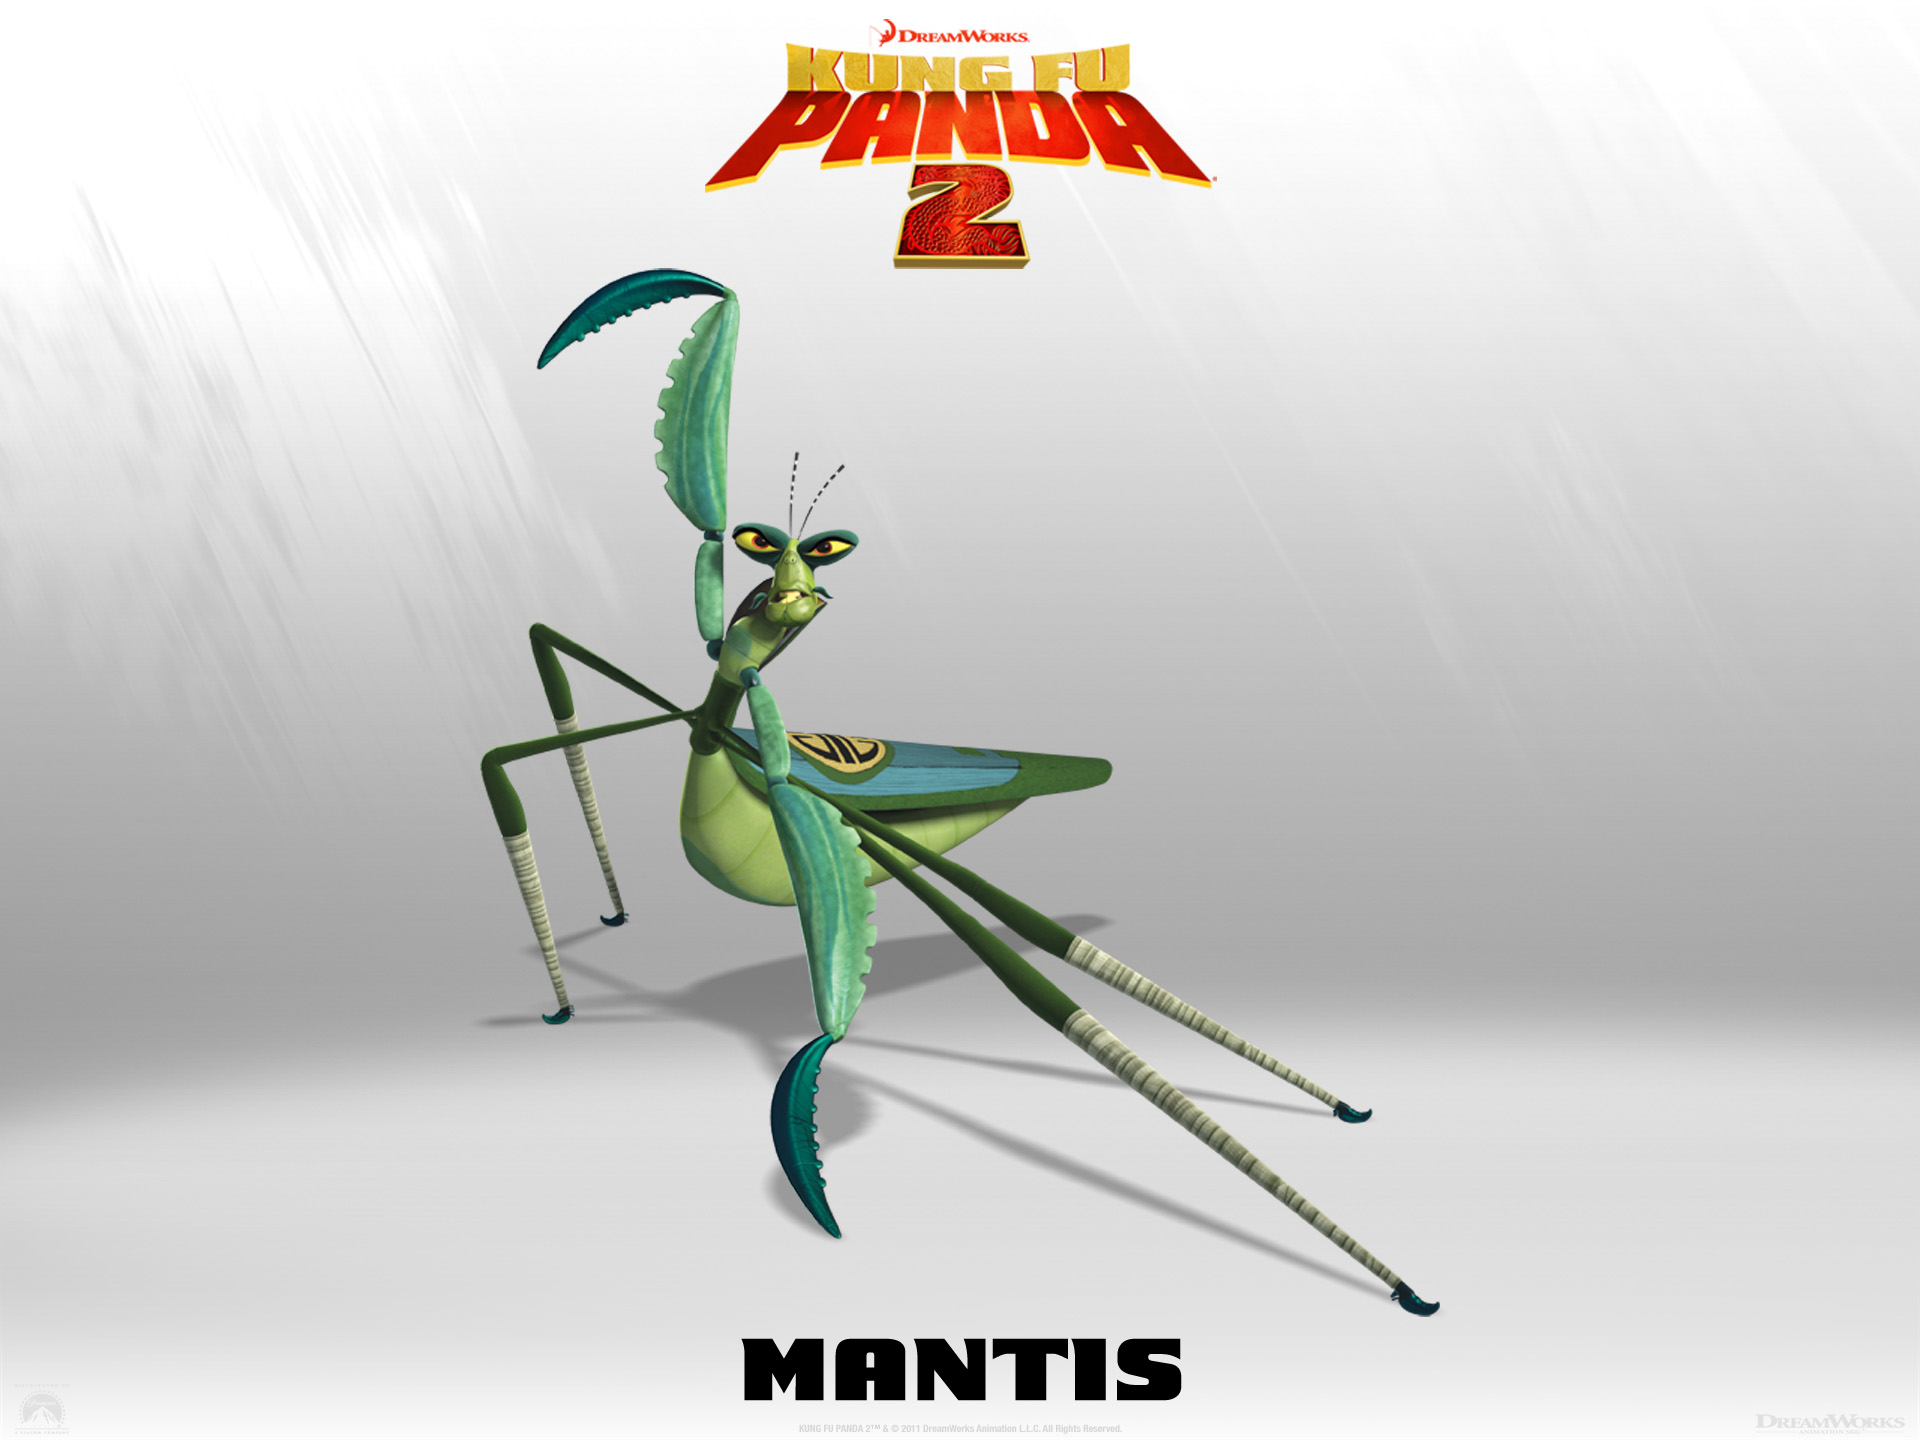 Wallpaper Kung Fu PANDA 2 Mantis Cinema Video